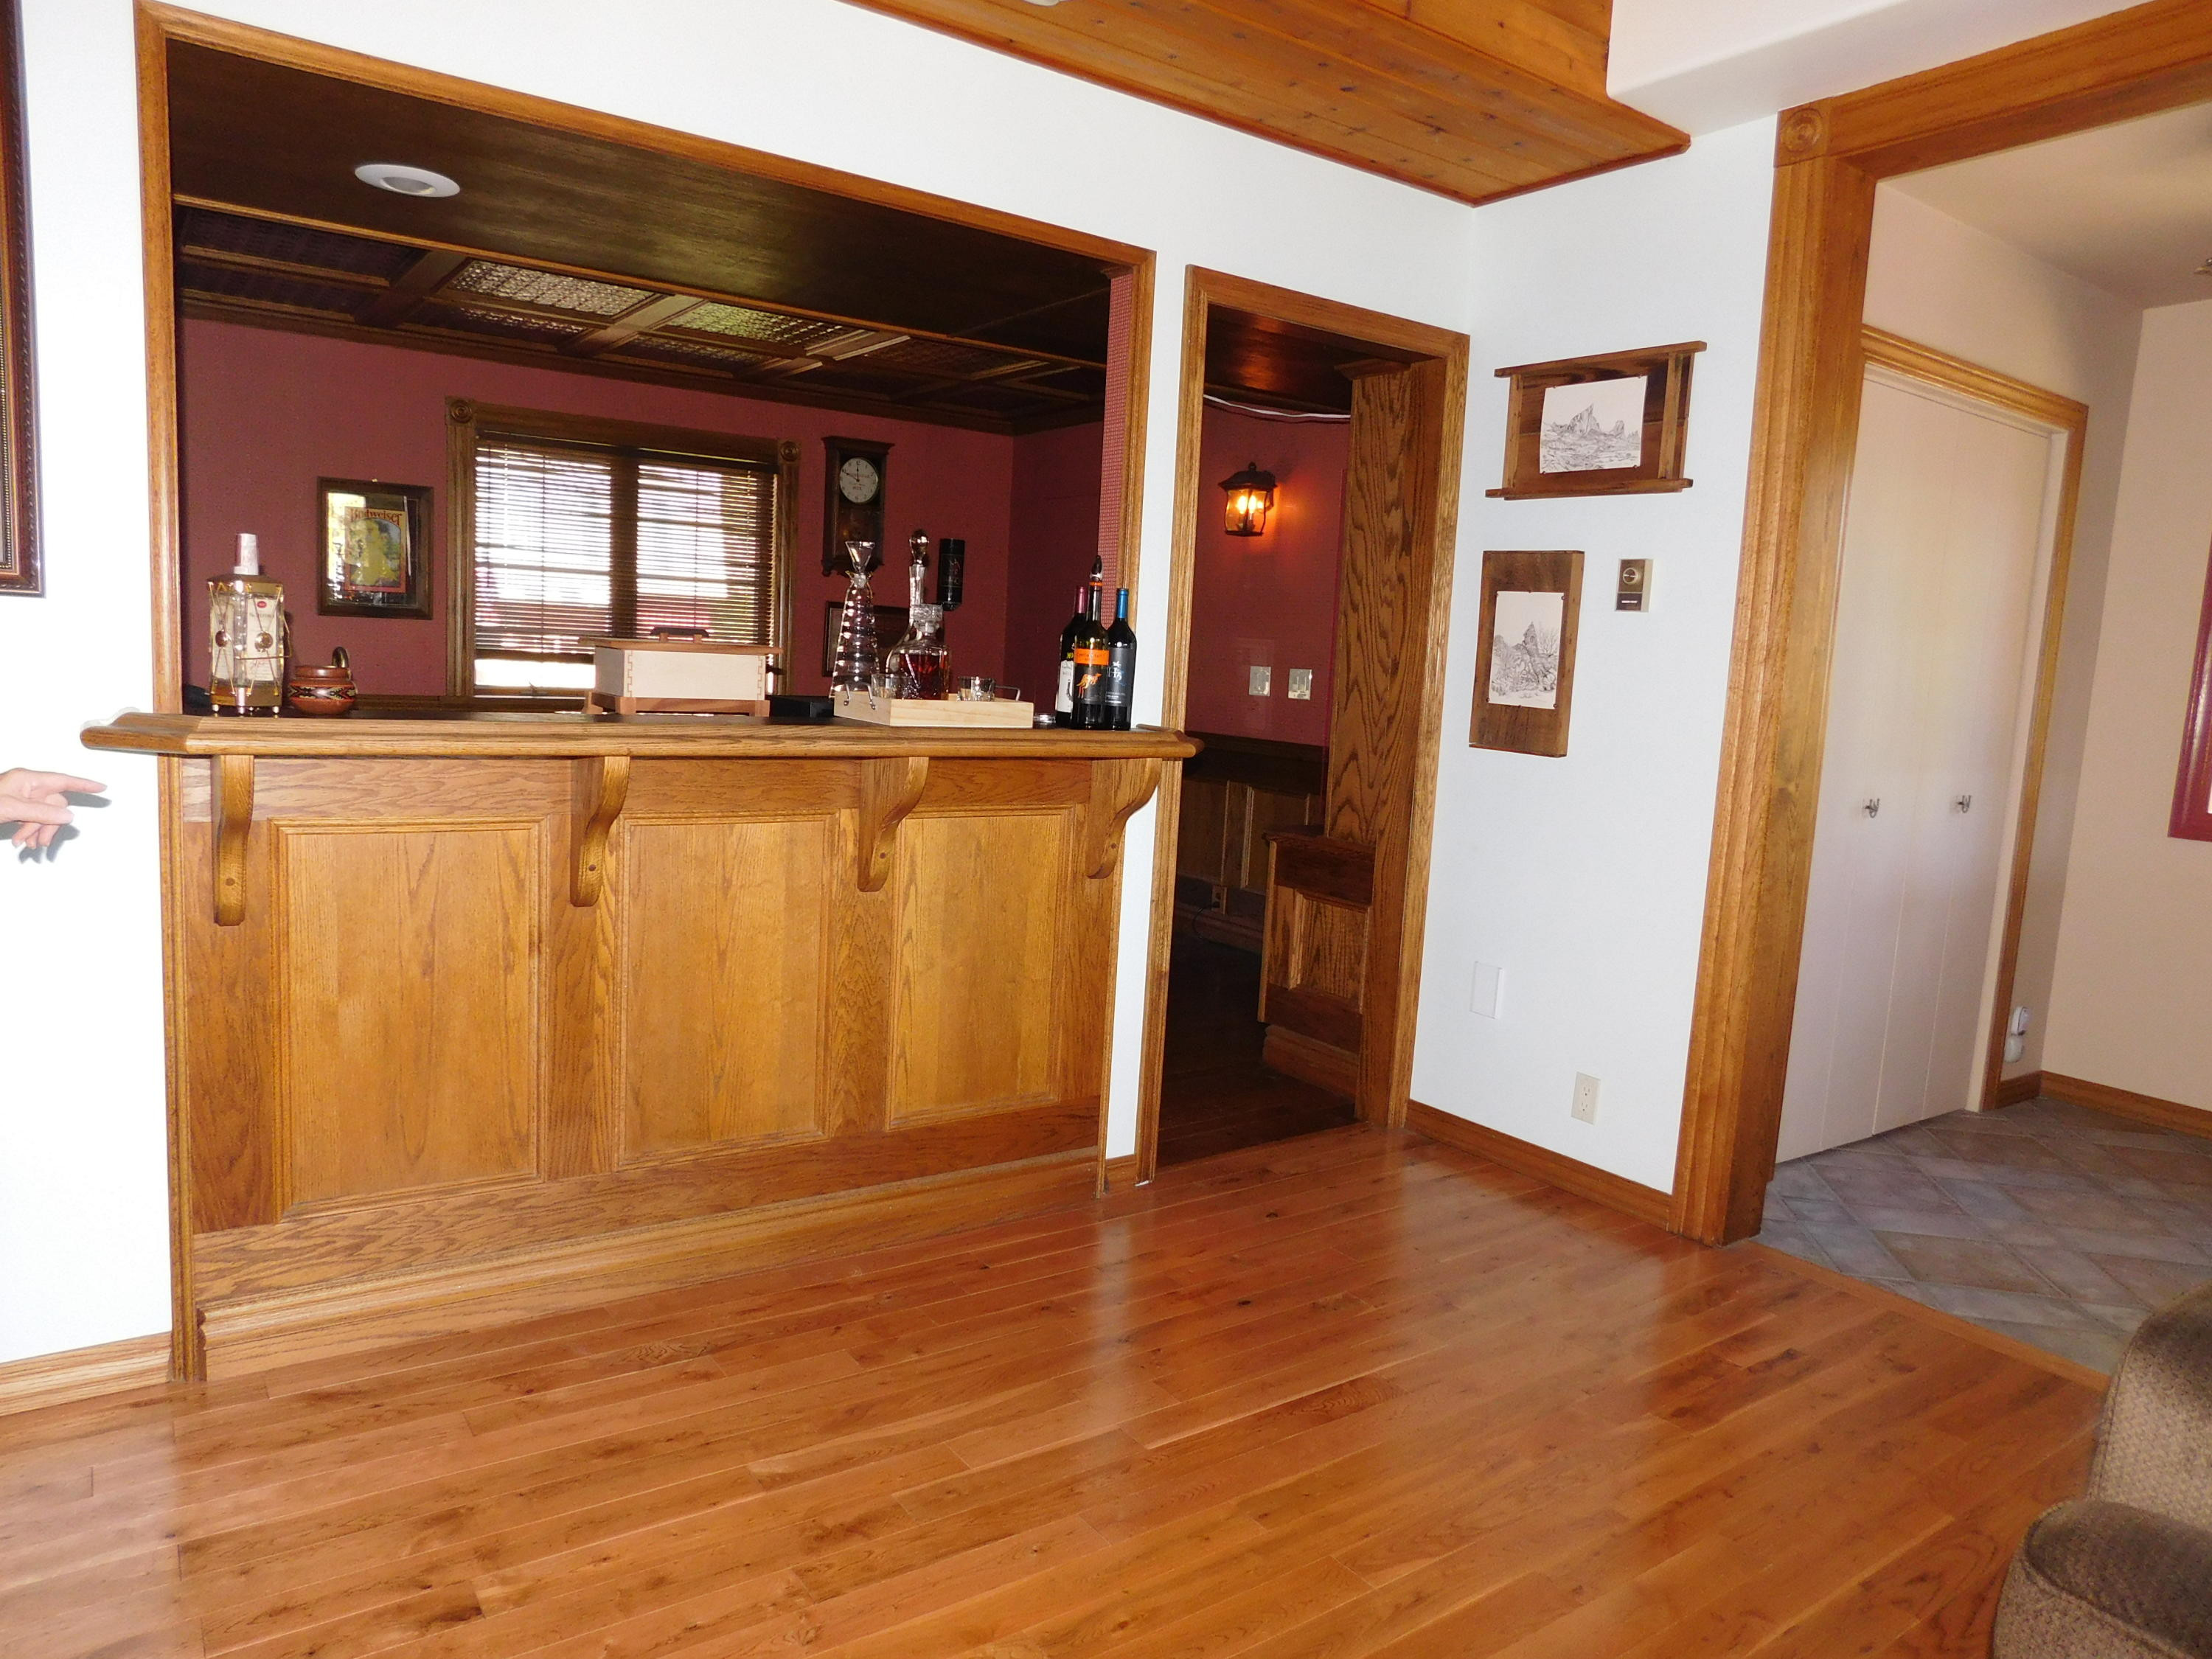 hardwood floor installation hamilton of 401 fleet street hamilton montana 59840 single family home for sale pertaining to additional photo for property listing at 401 fleet street 401 fleet street hamilton montana 59840